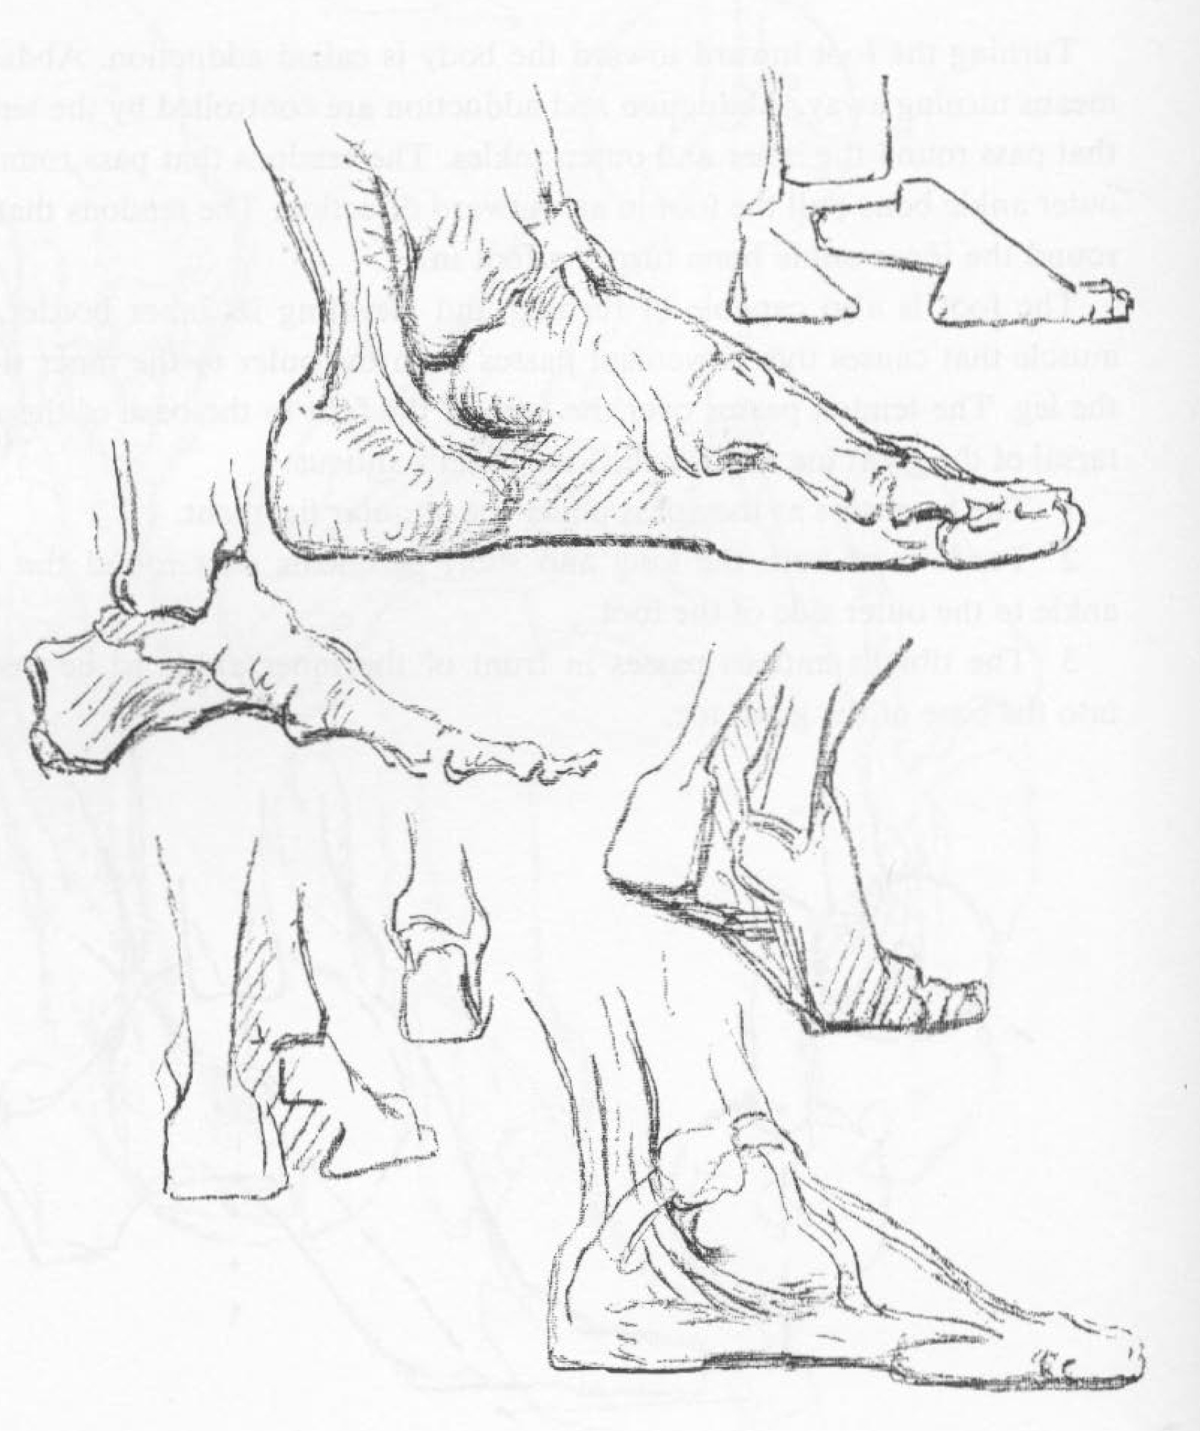 The Inner View of the Foot When Drawing it